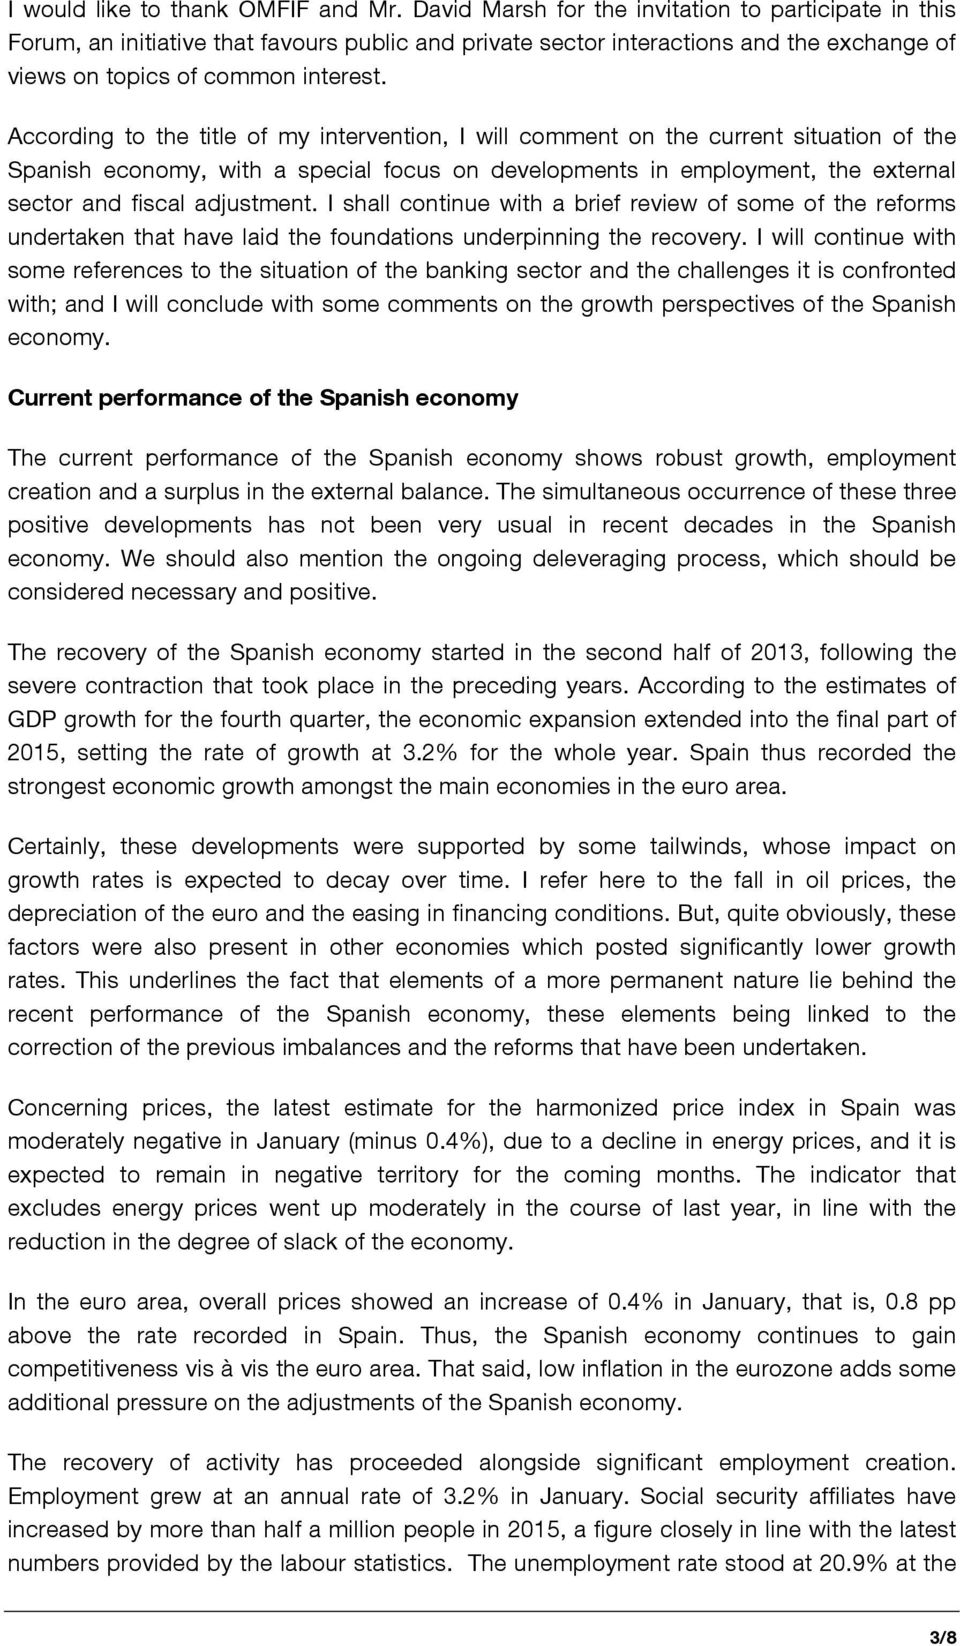 According to the title of my intervention, I will comment on the current situation of the Spanish economy, with a special focus on developments in employment, the external sector and fiscal